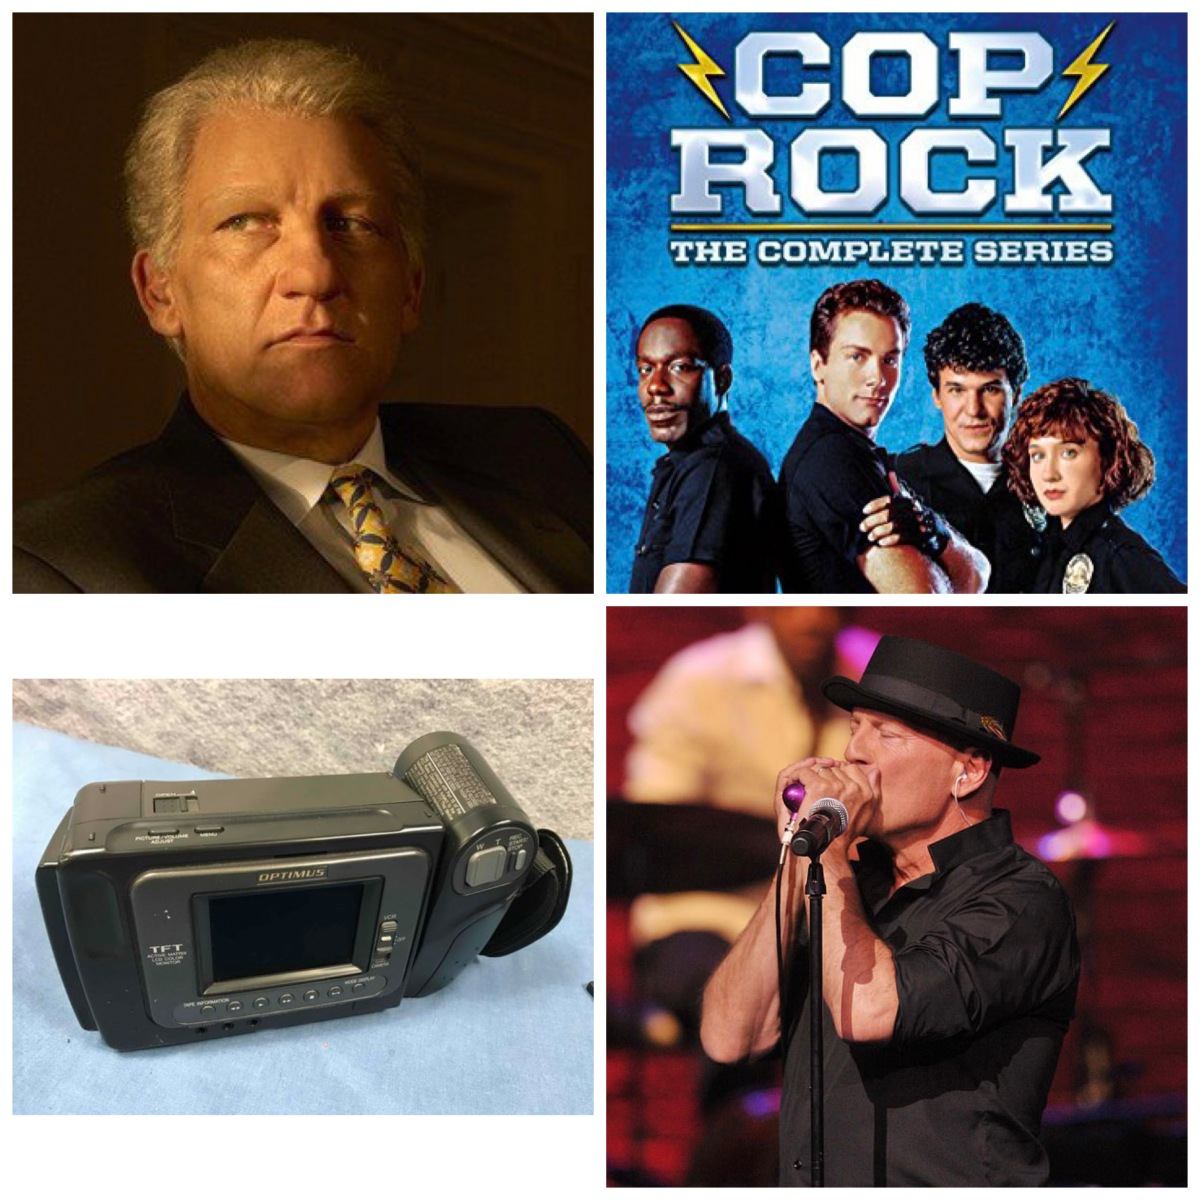 Clive Owen as Bill Clinton, Cop Rock, an Optimus Camcorder, and Bruce Willis playing the harmonica.